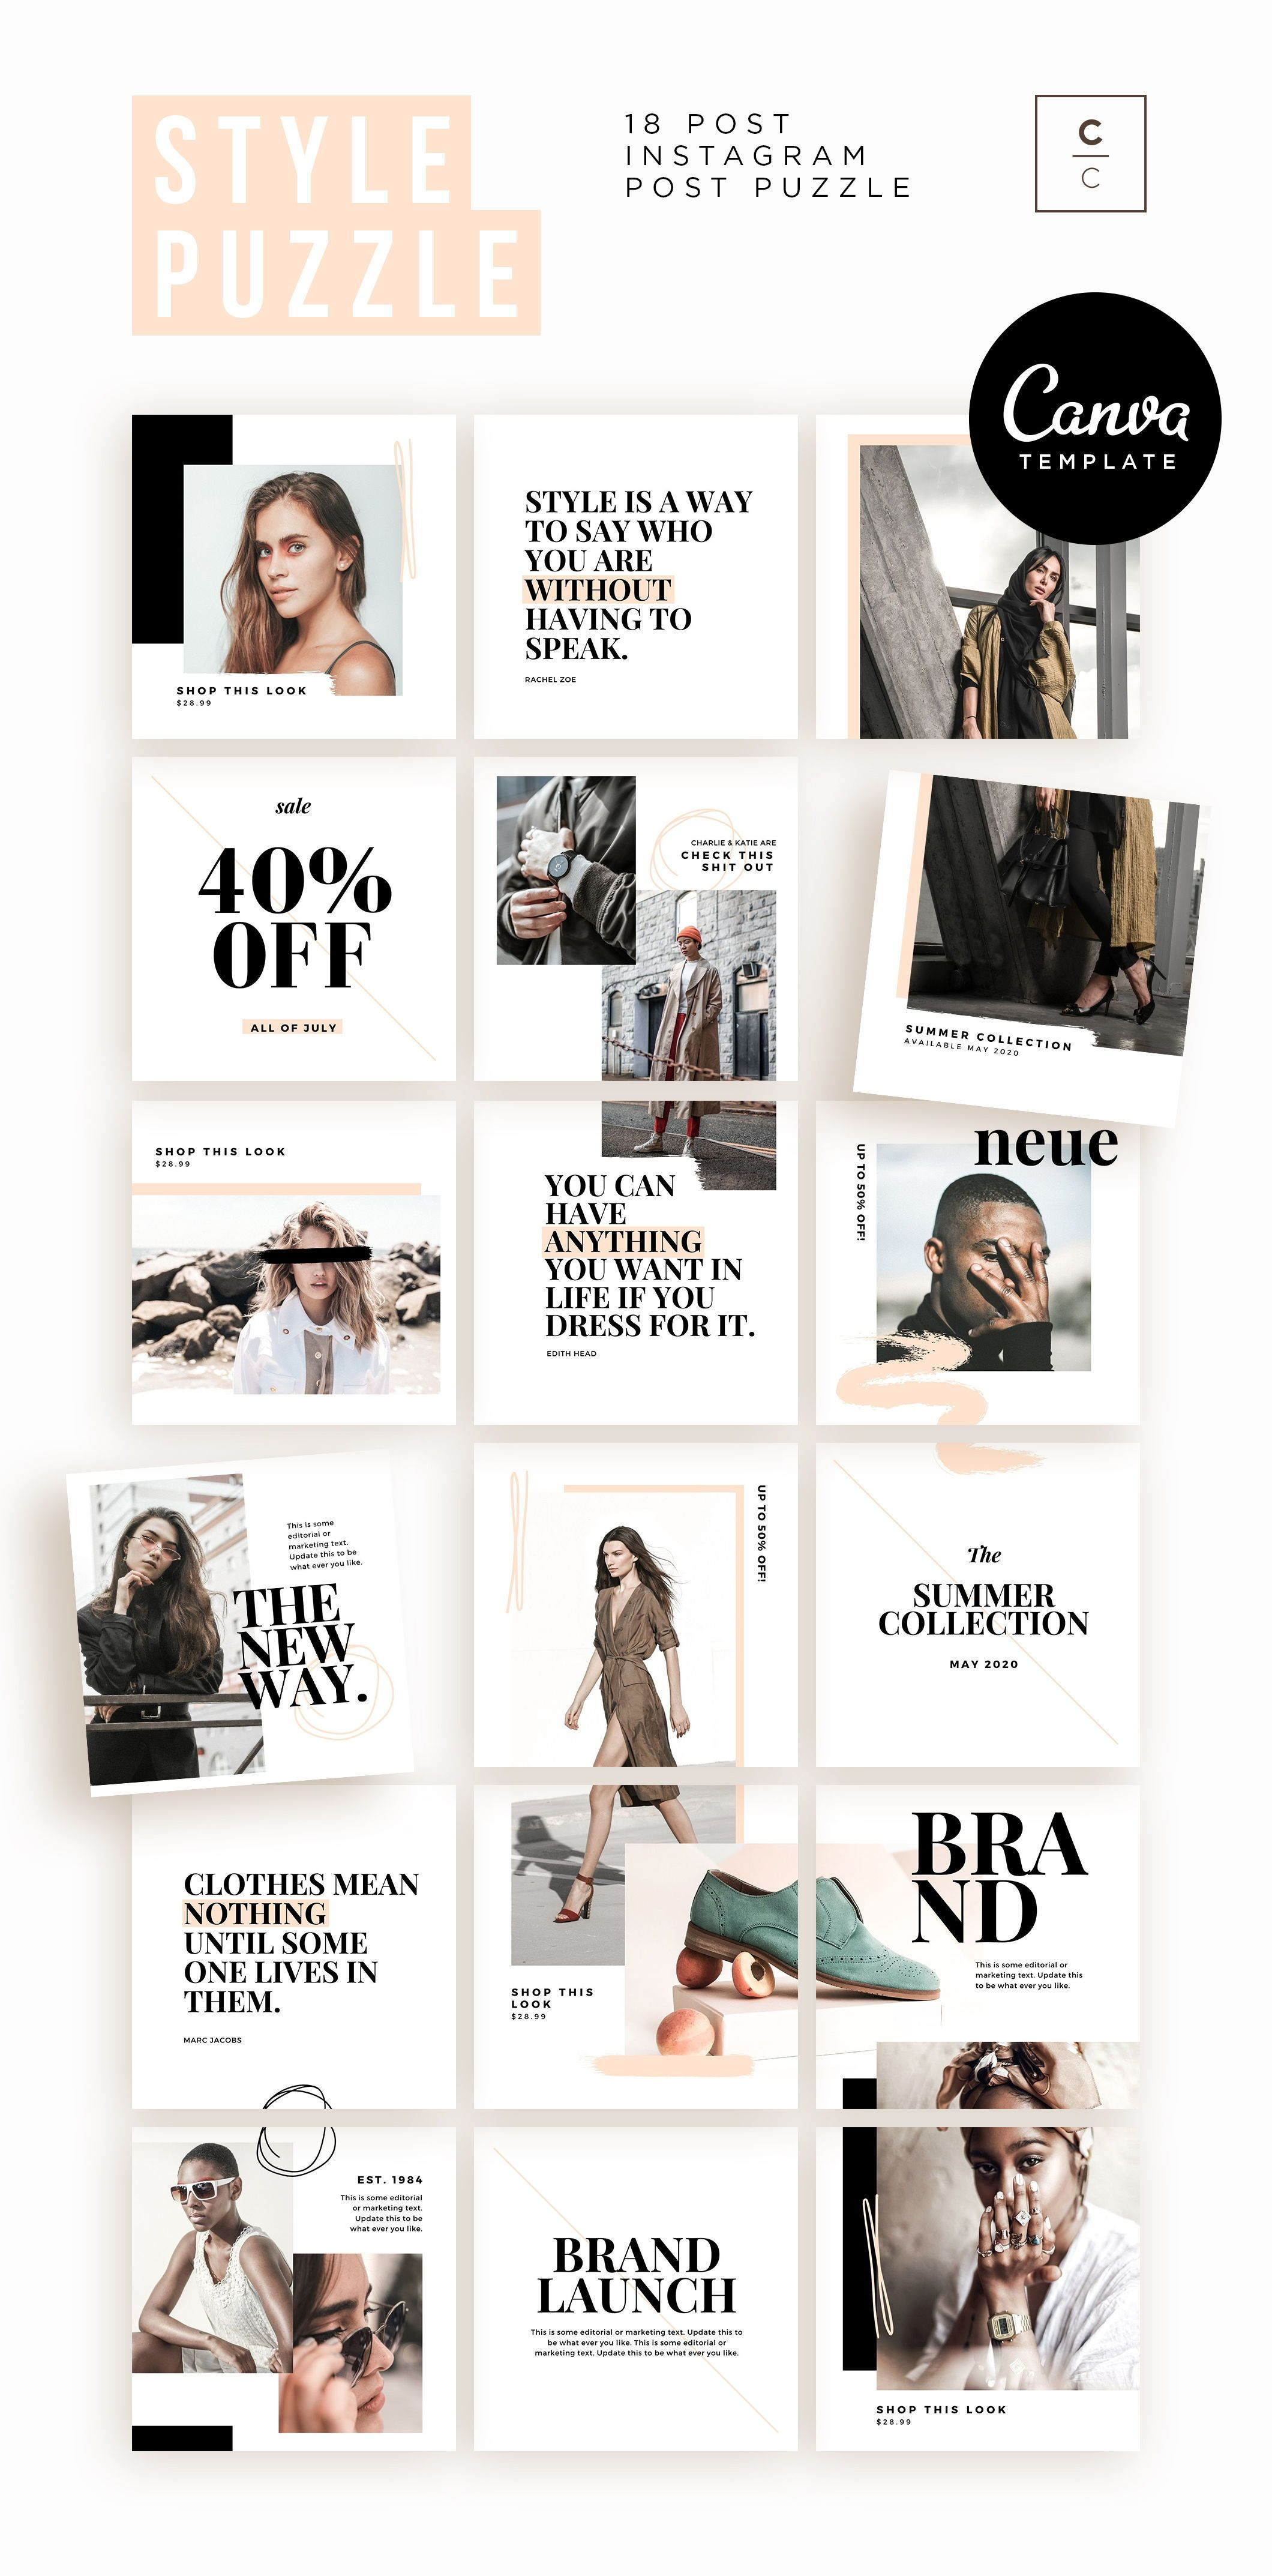 Fashion Instagram Puzzle Template for Canva Instagram   Etsy ...